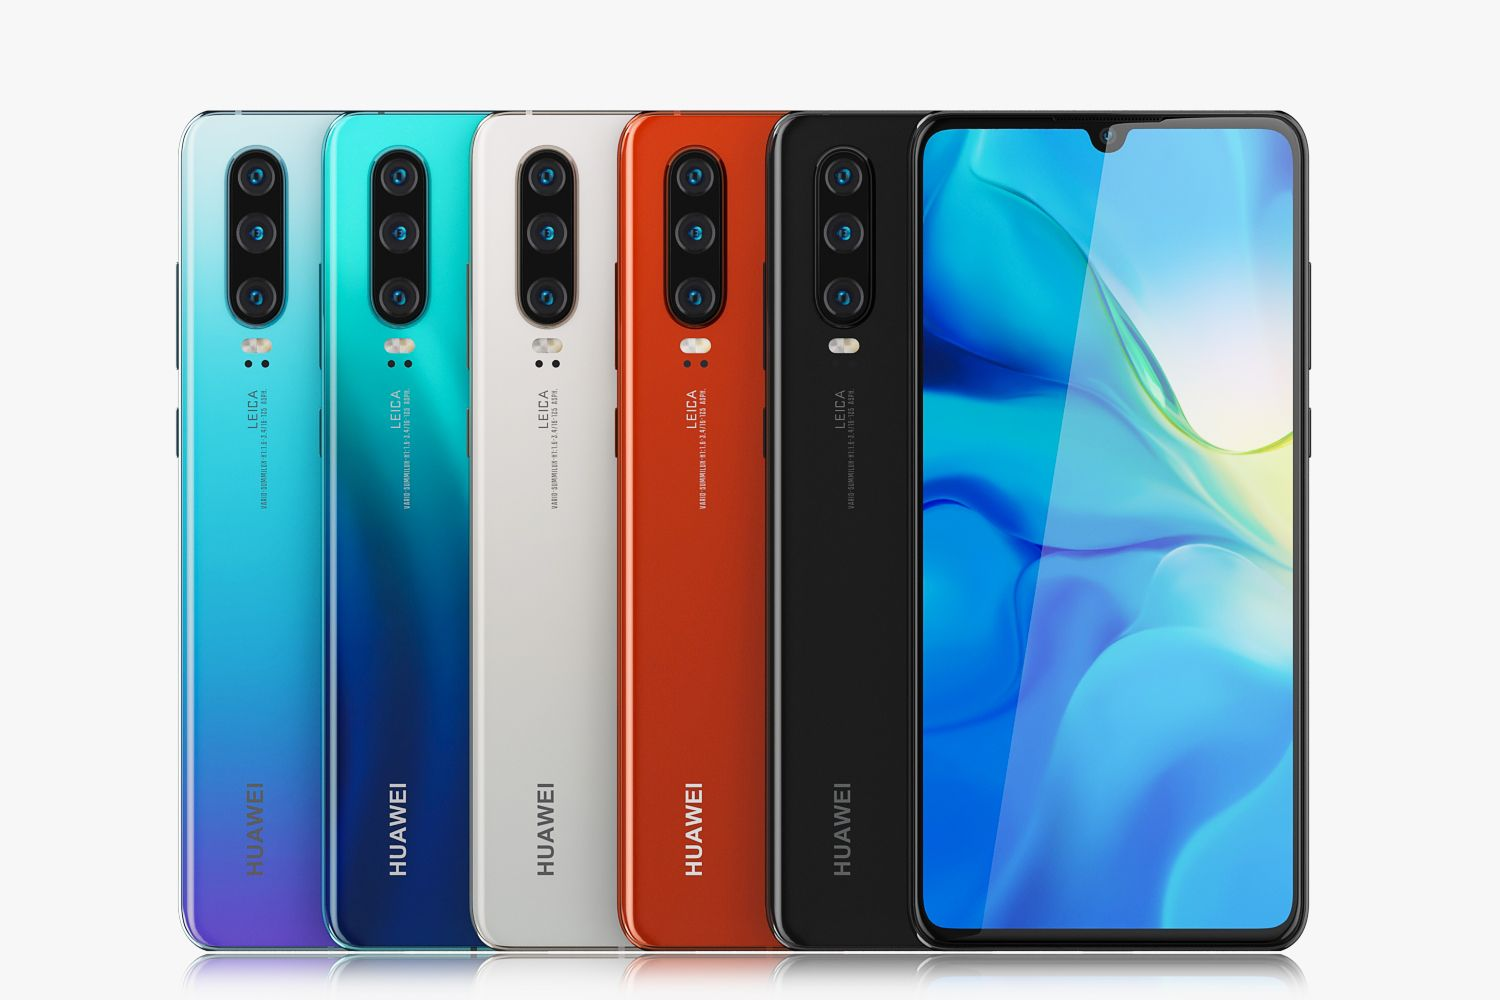 Huawei P30 And P30 Pro Collection All The Colors Huawei Cinema 4d